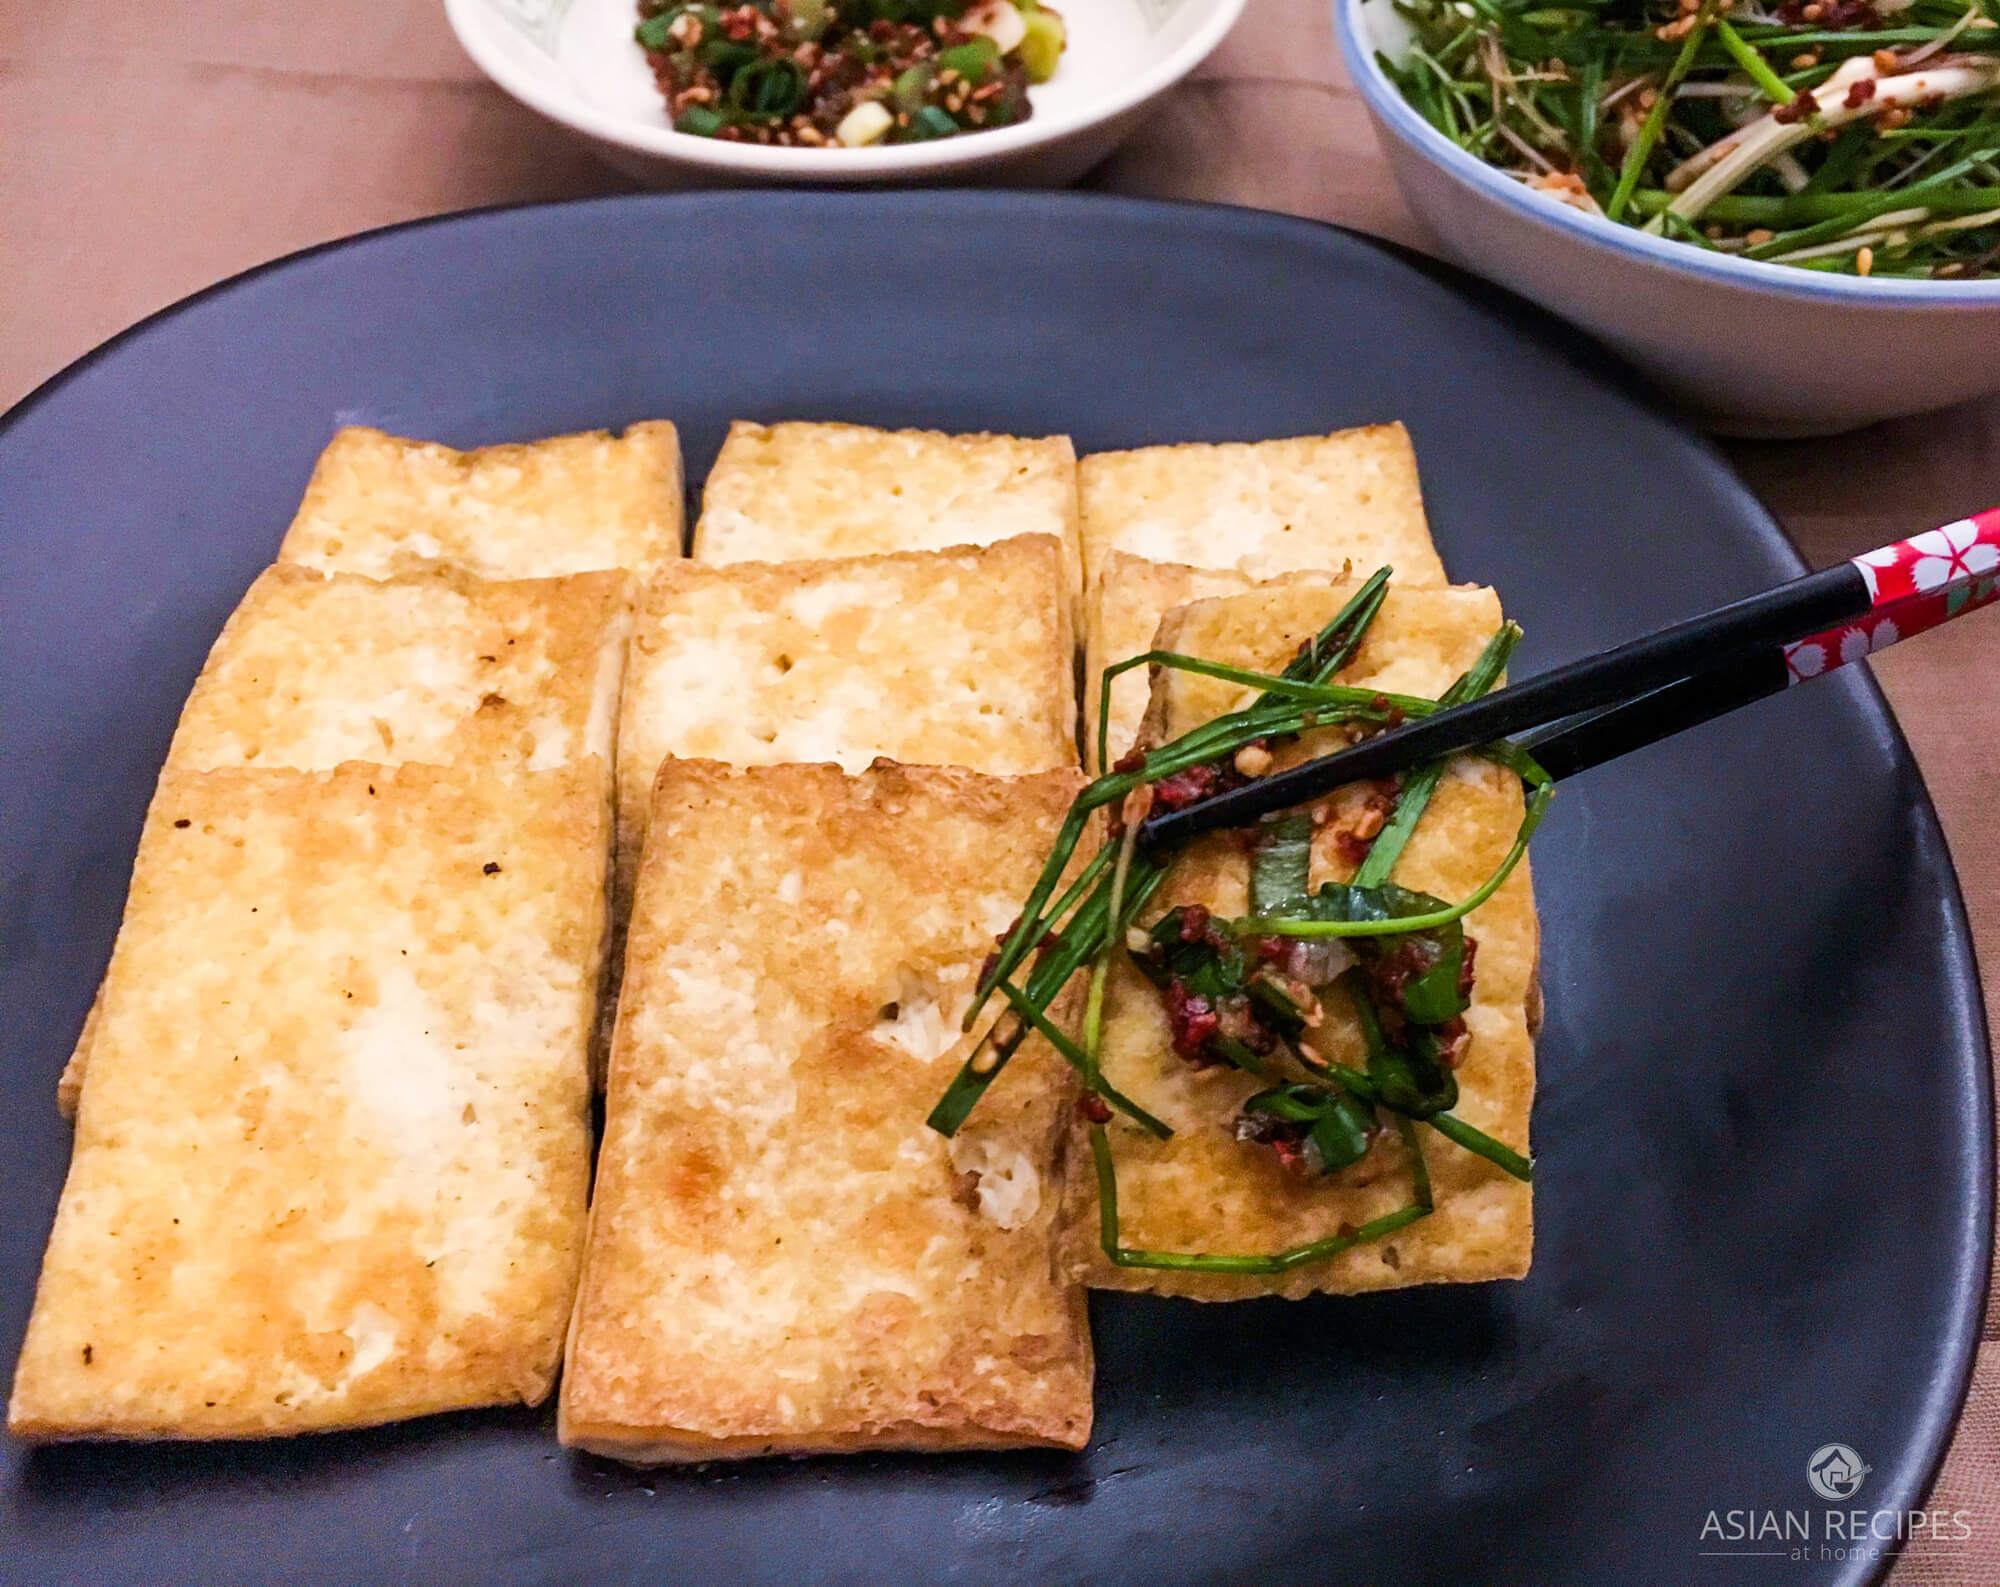 Picking up a piece of pan-fried tofu with our chive salad and sauce.